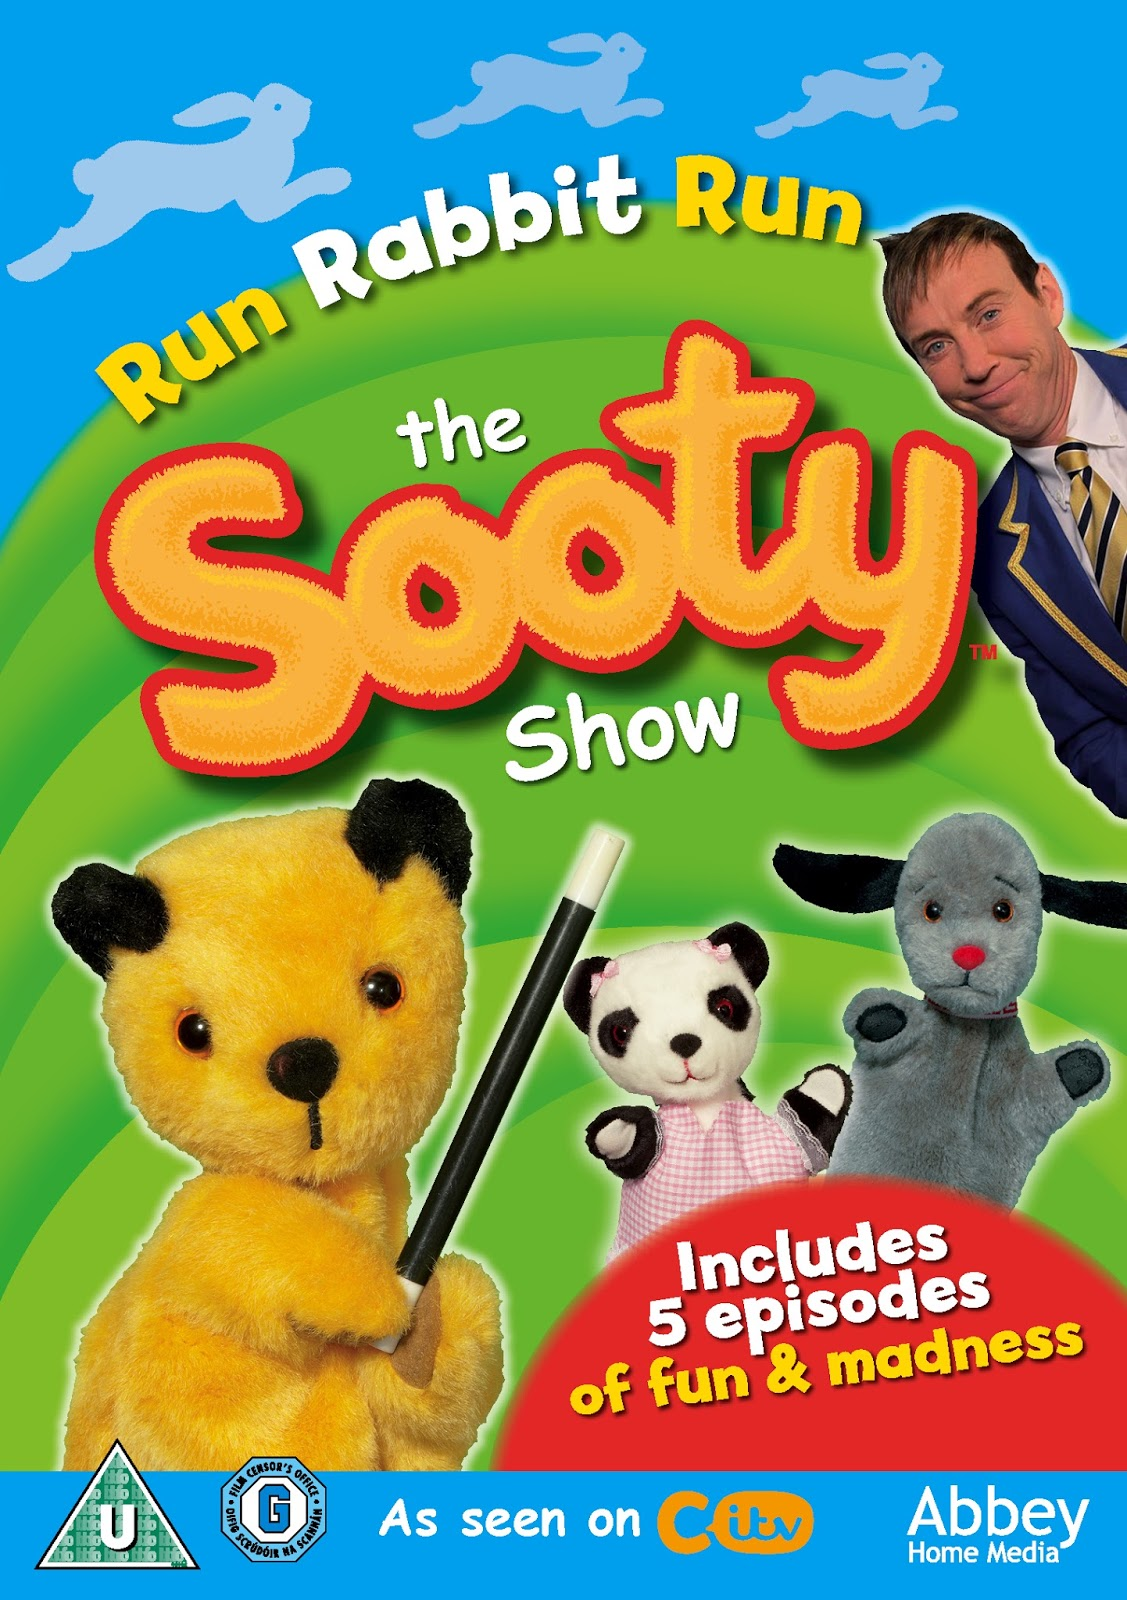 sooty-run-rabbit-run